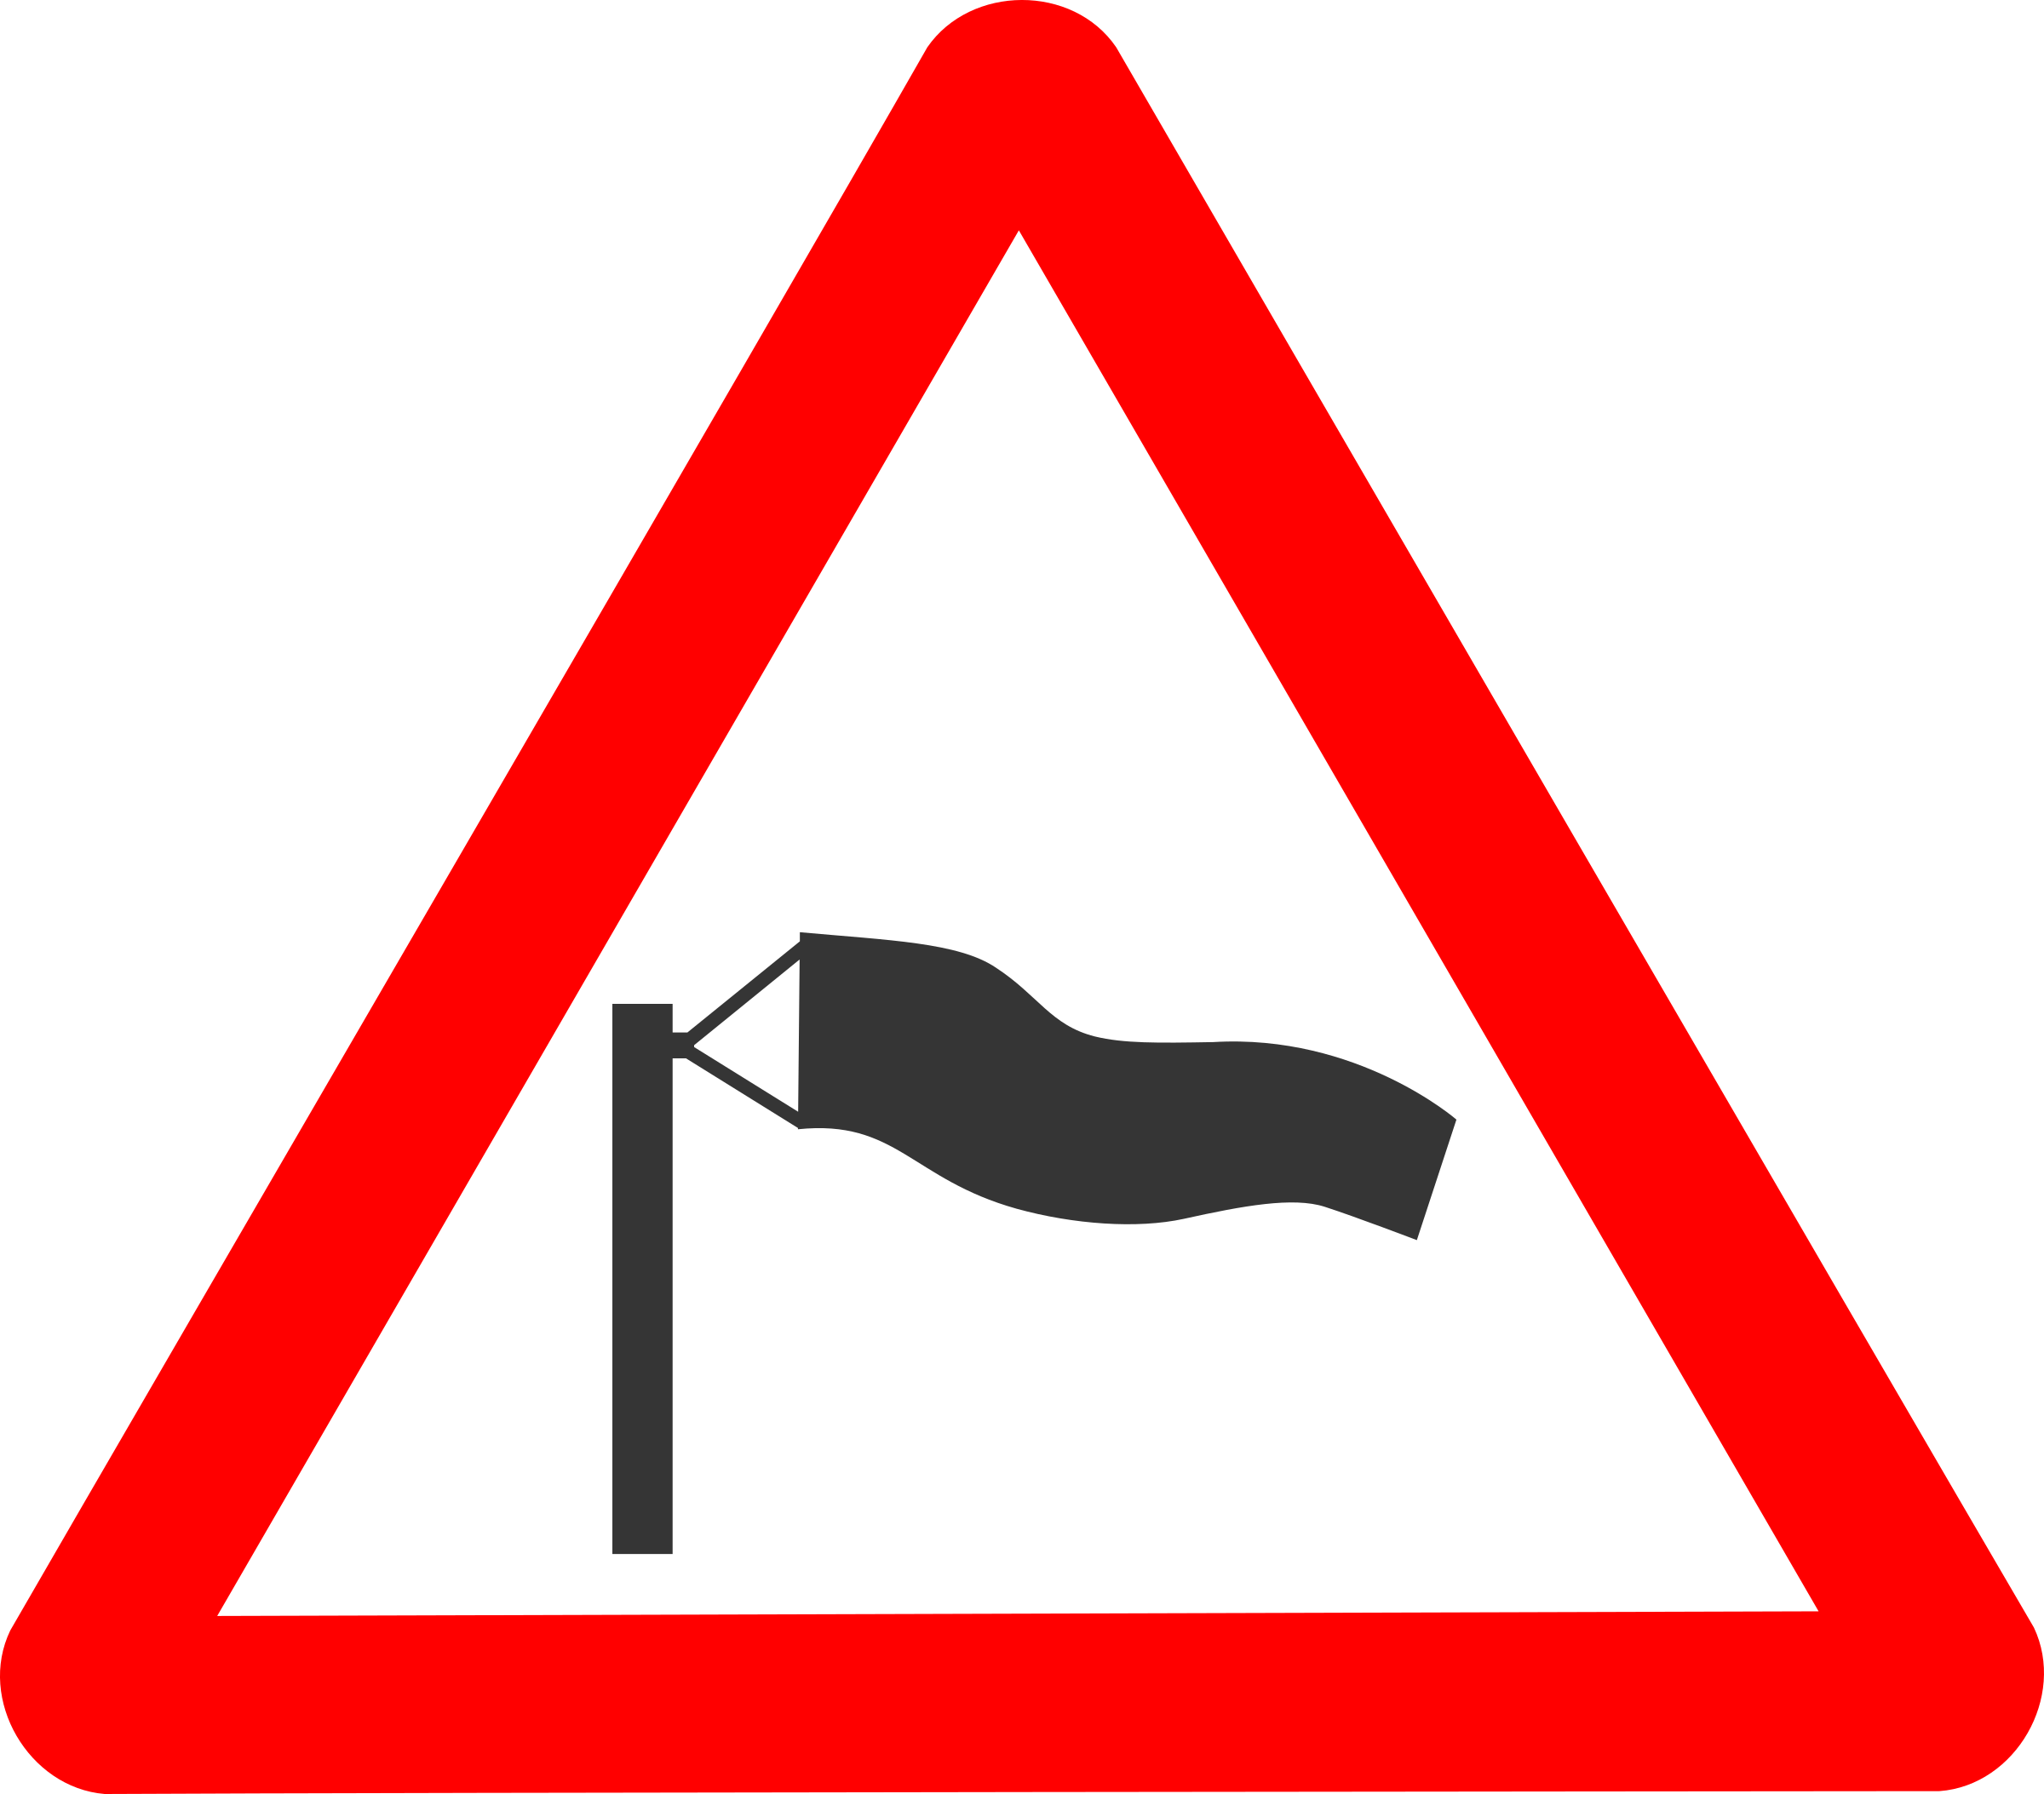 Roadsign Crosswind by Simarilius